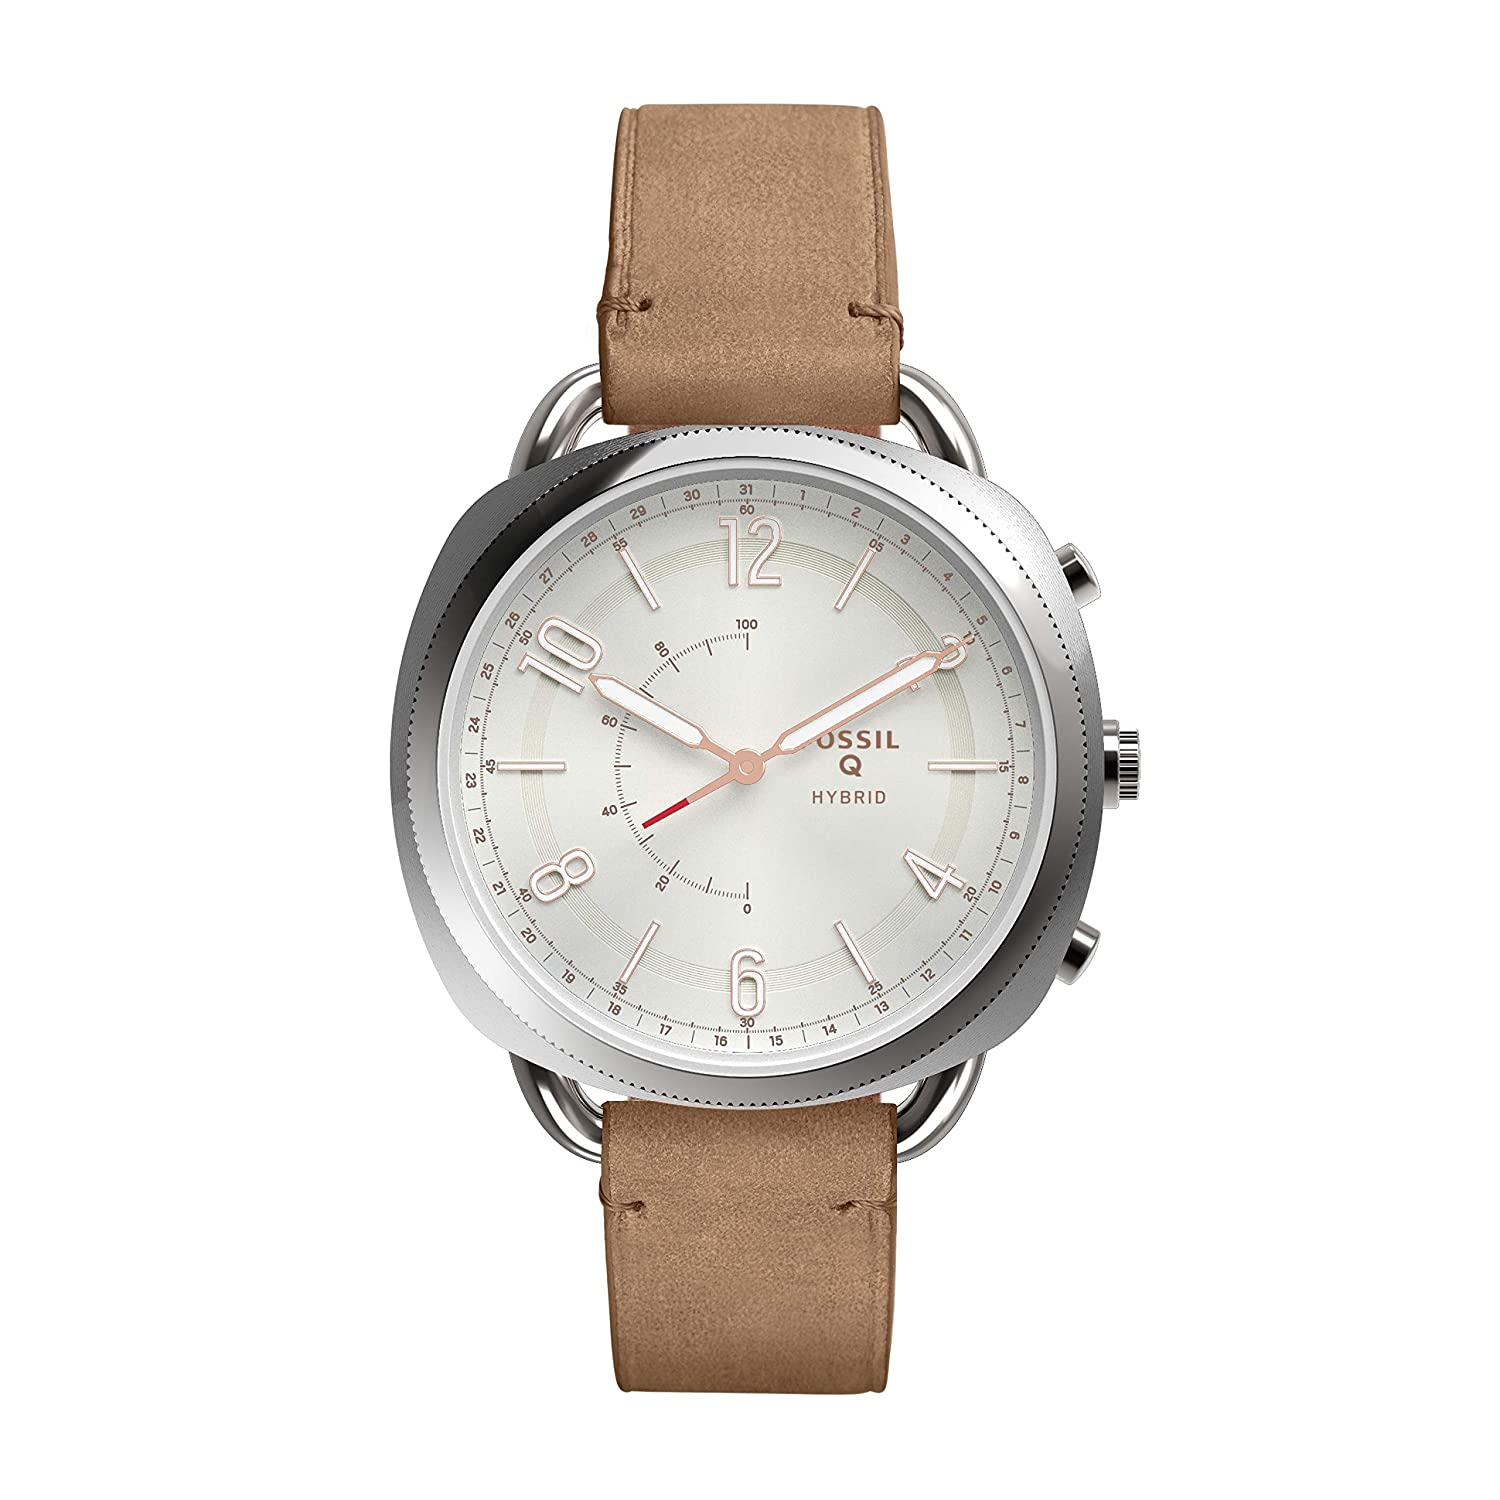 Fossil Q Accomplice, Smartwatches, Classic, Simple